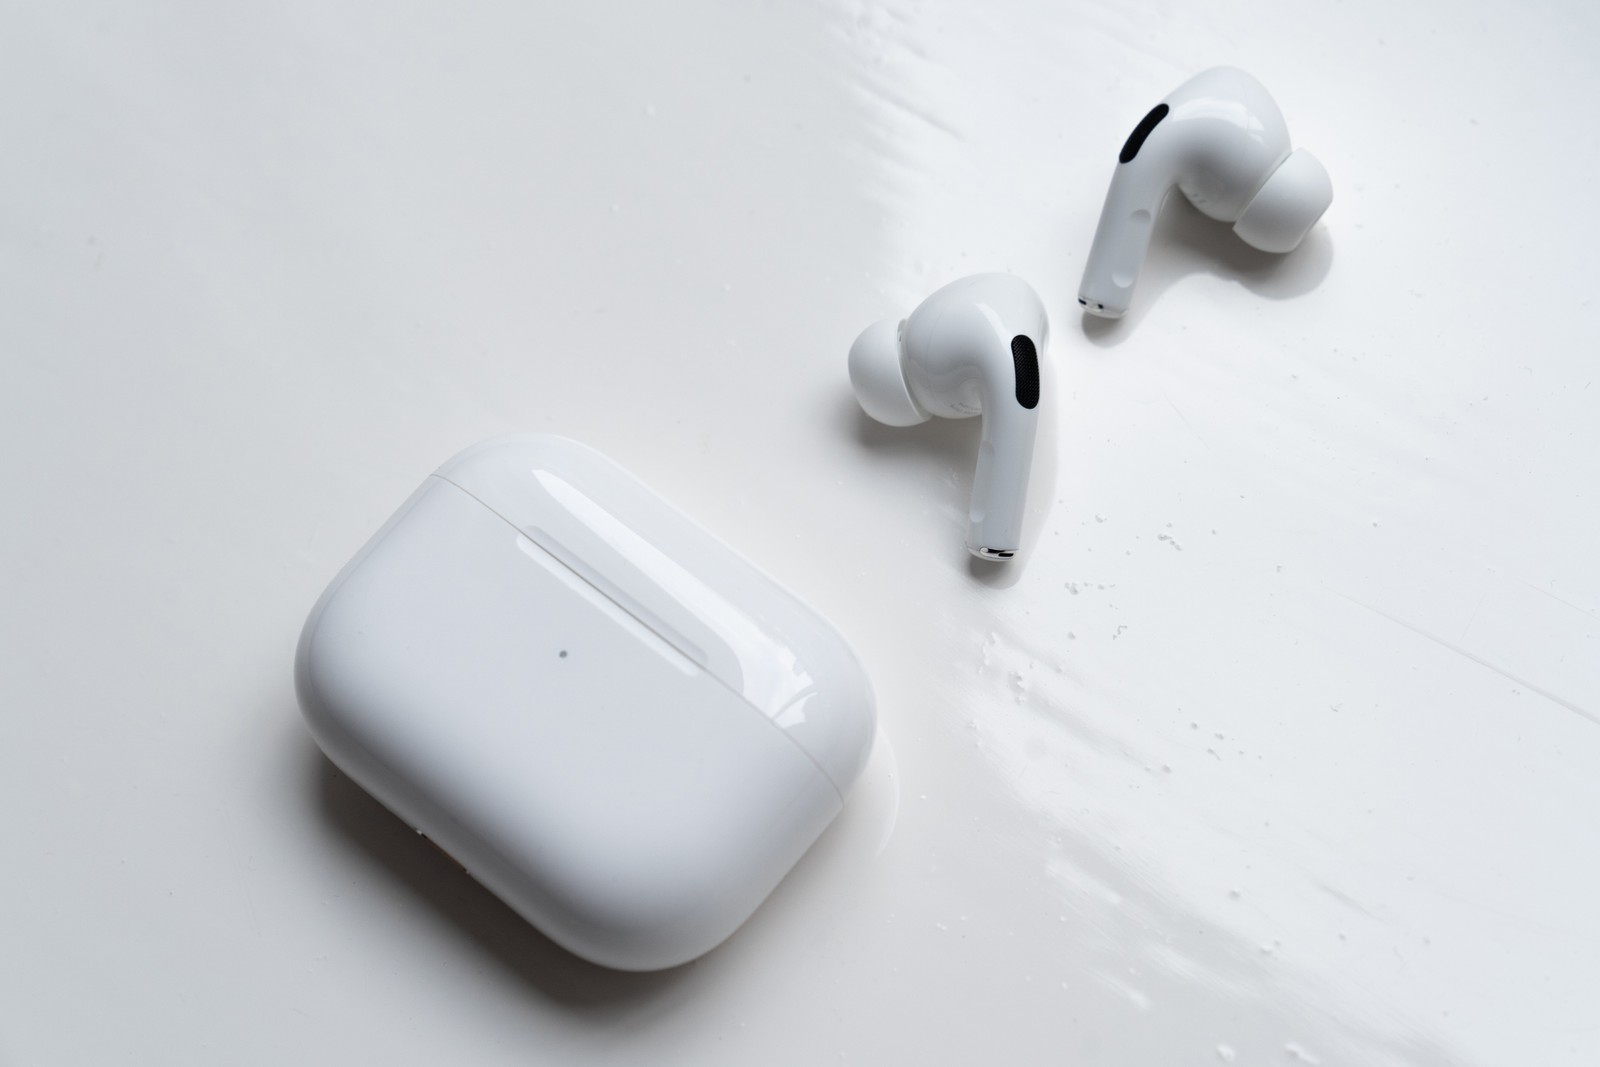 HYPEBEAST 近賞評測最新 Apple AirPods Pro 入耳式消噪耳機